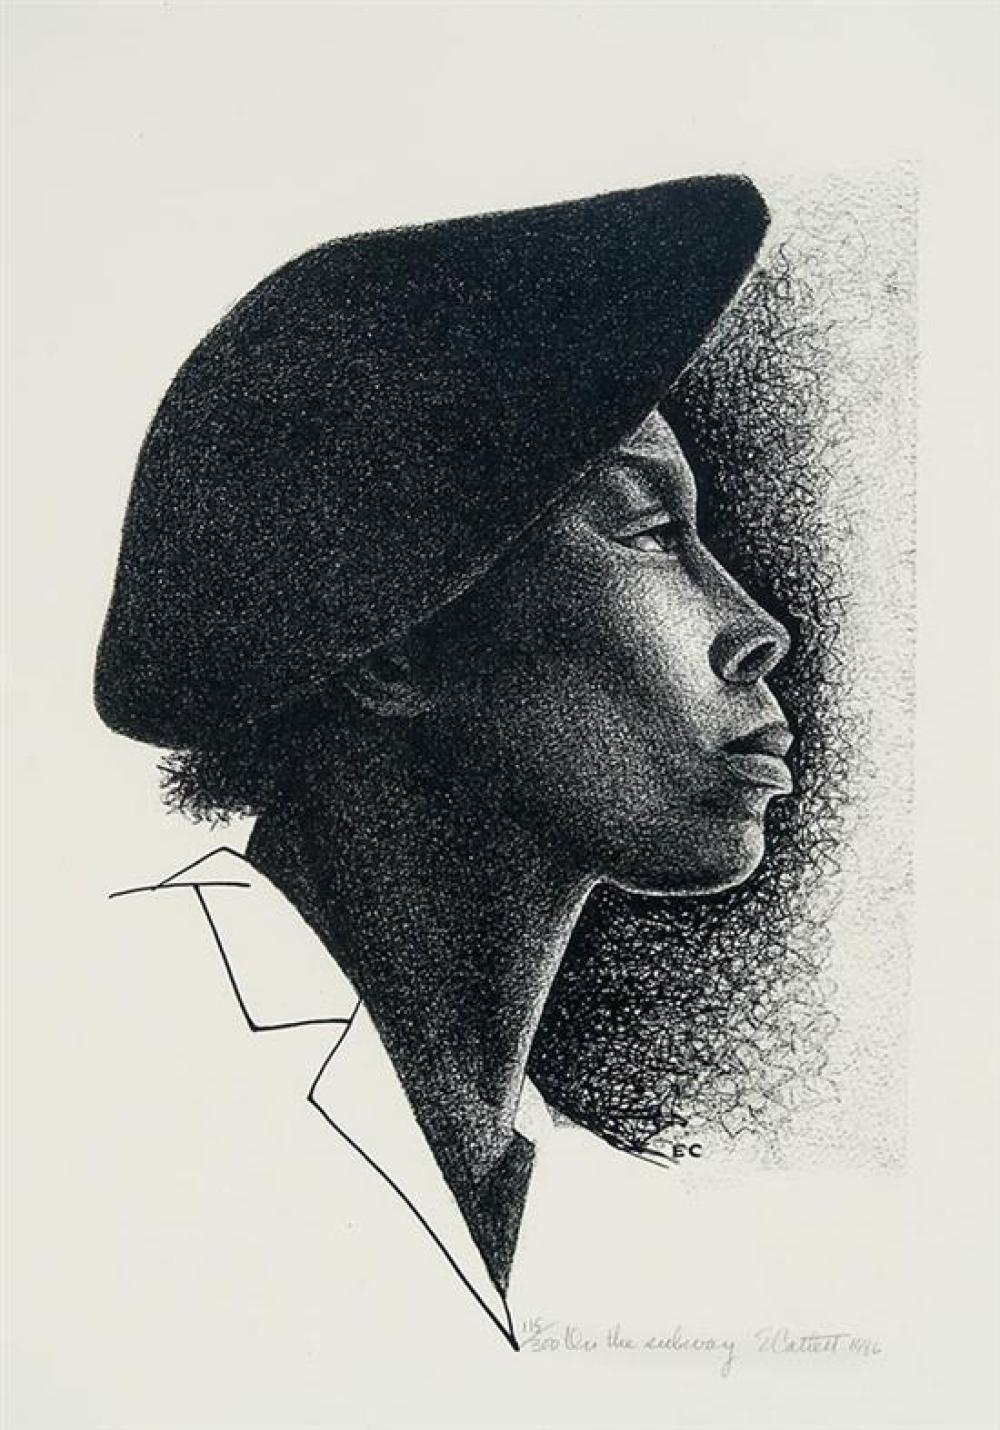 Elizabeth Catlett (American 1915-2012), On the Subway, Unframed Lithograph, 23 x 17-1/2 inches